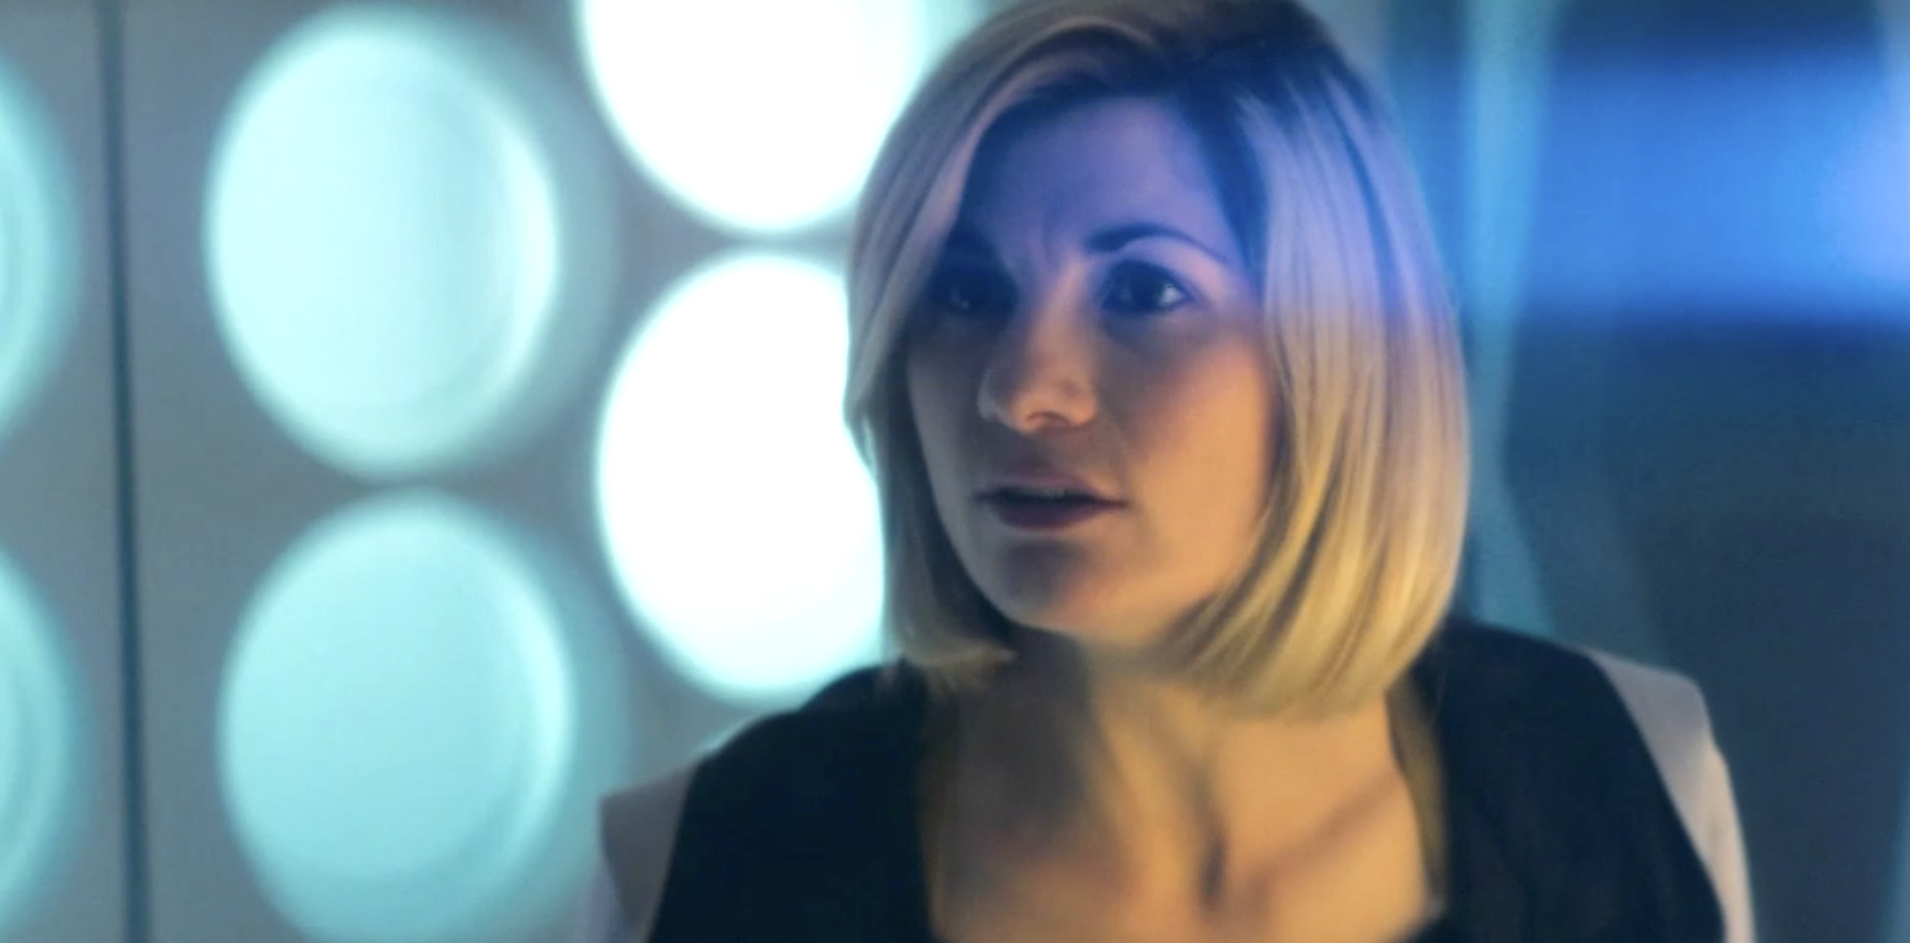 Doctor Who brings back major fan favourite – and then drops another huge reveal